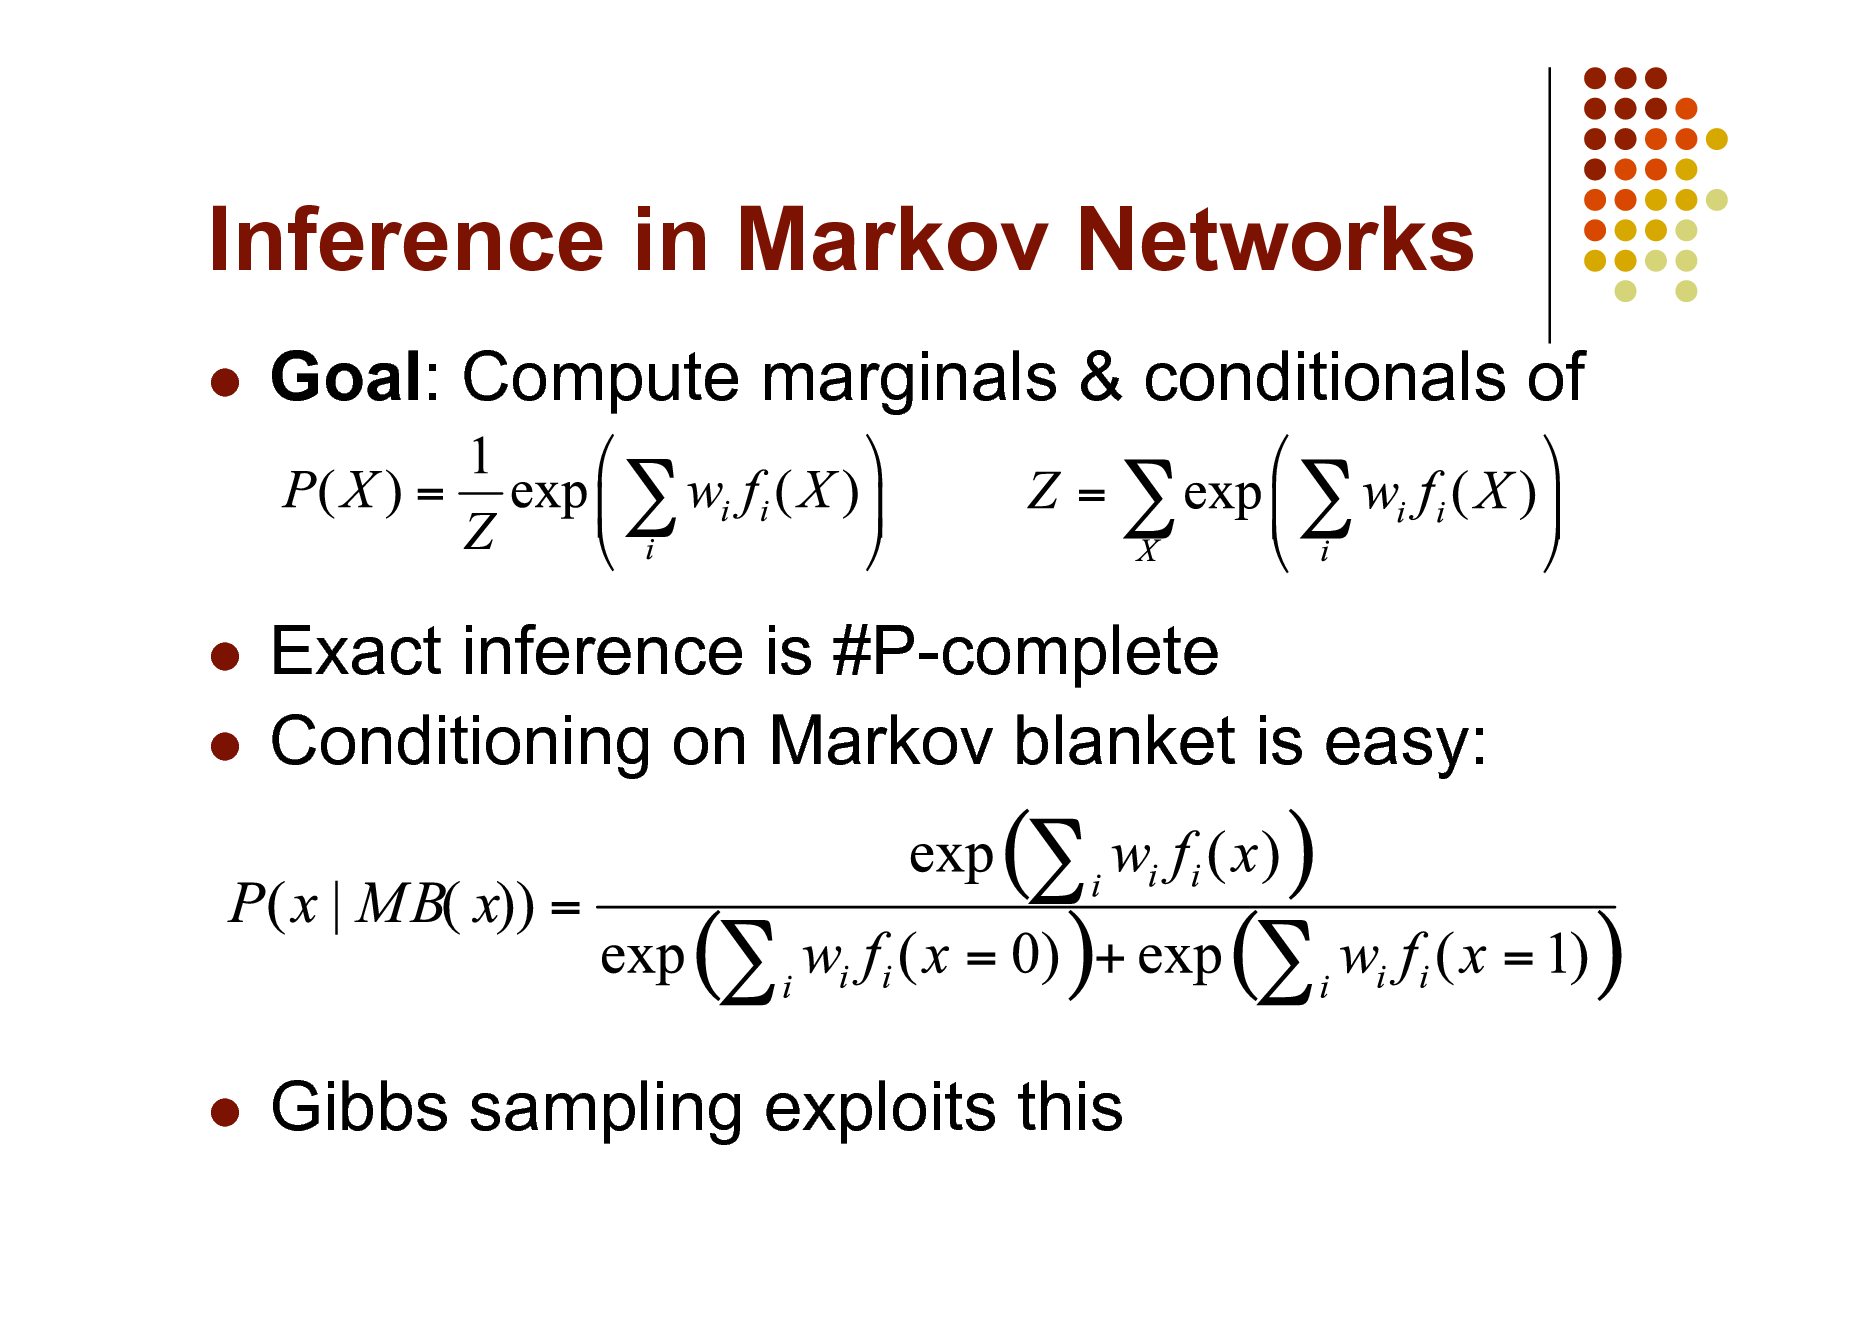 Slide: Inference in Markov Networks   Goal: Compute marginals & conditionals of  Exact inference is #P-complete  Conditioning on Markov blanket is easy:     Gibbs sampling exploits this